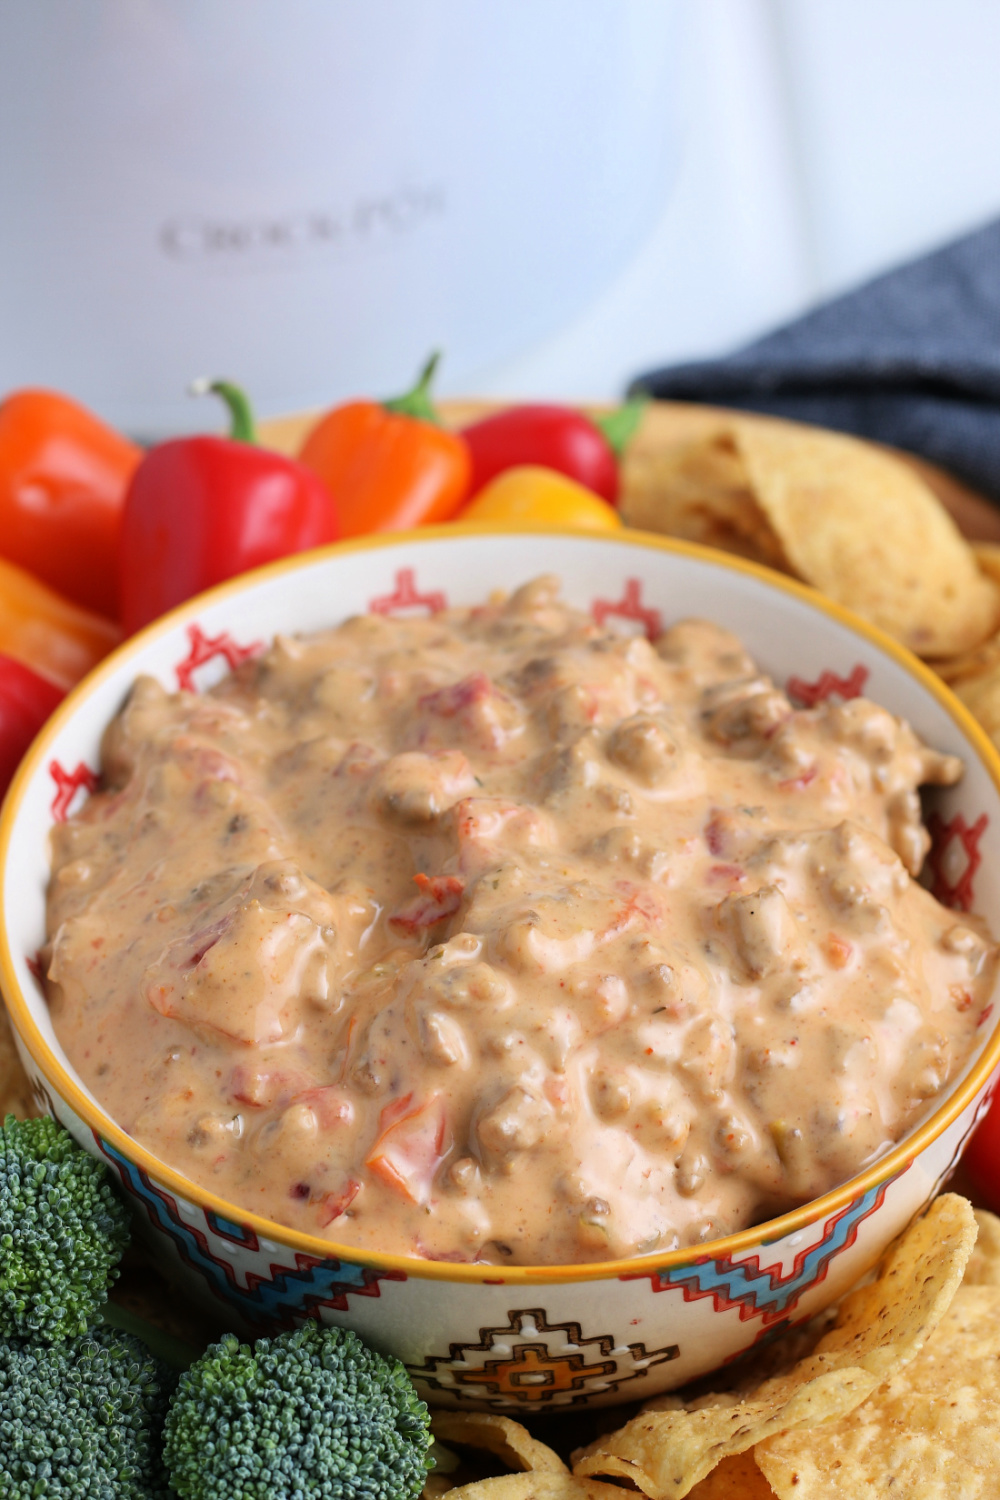 Crockpot Cheesy Rotel Dip in a bowl surrounded by chips and vegetables